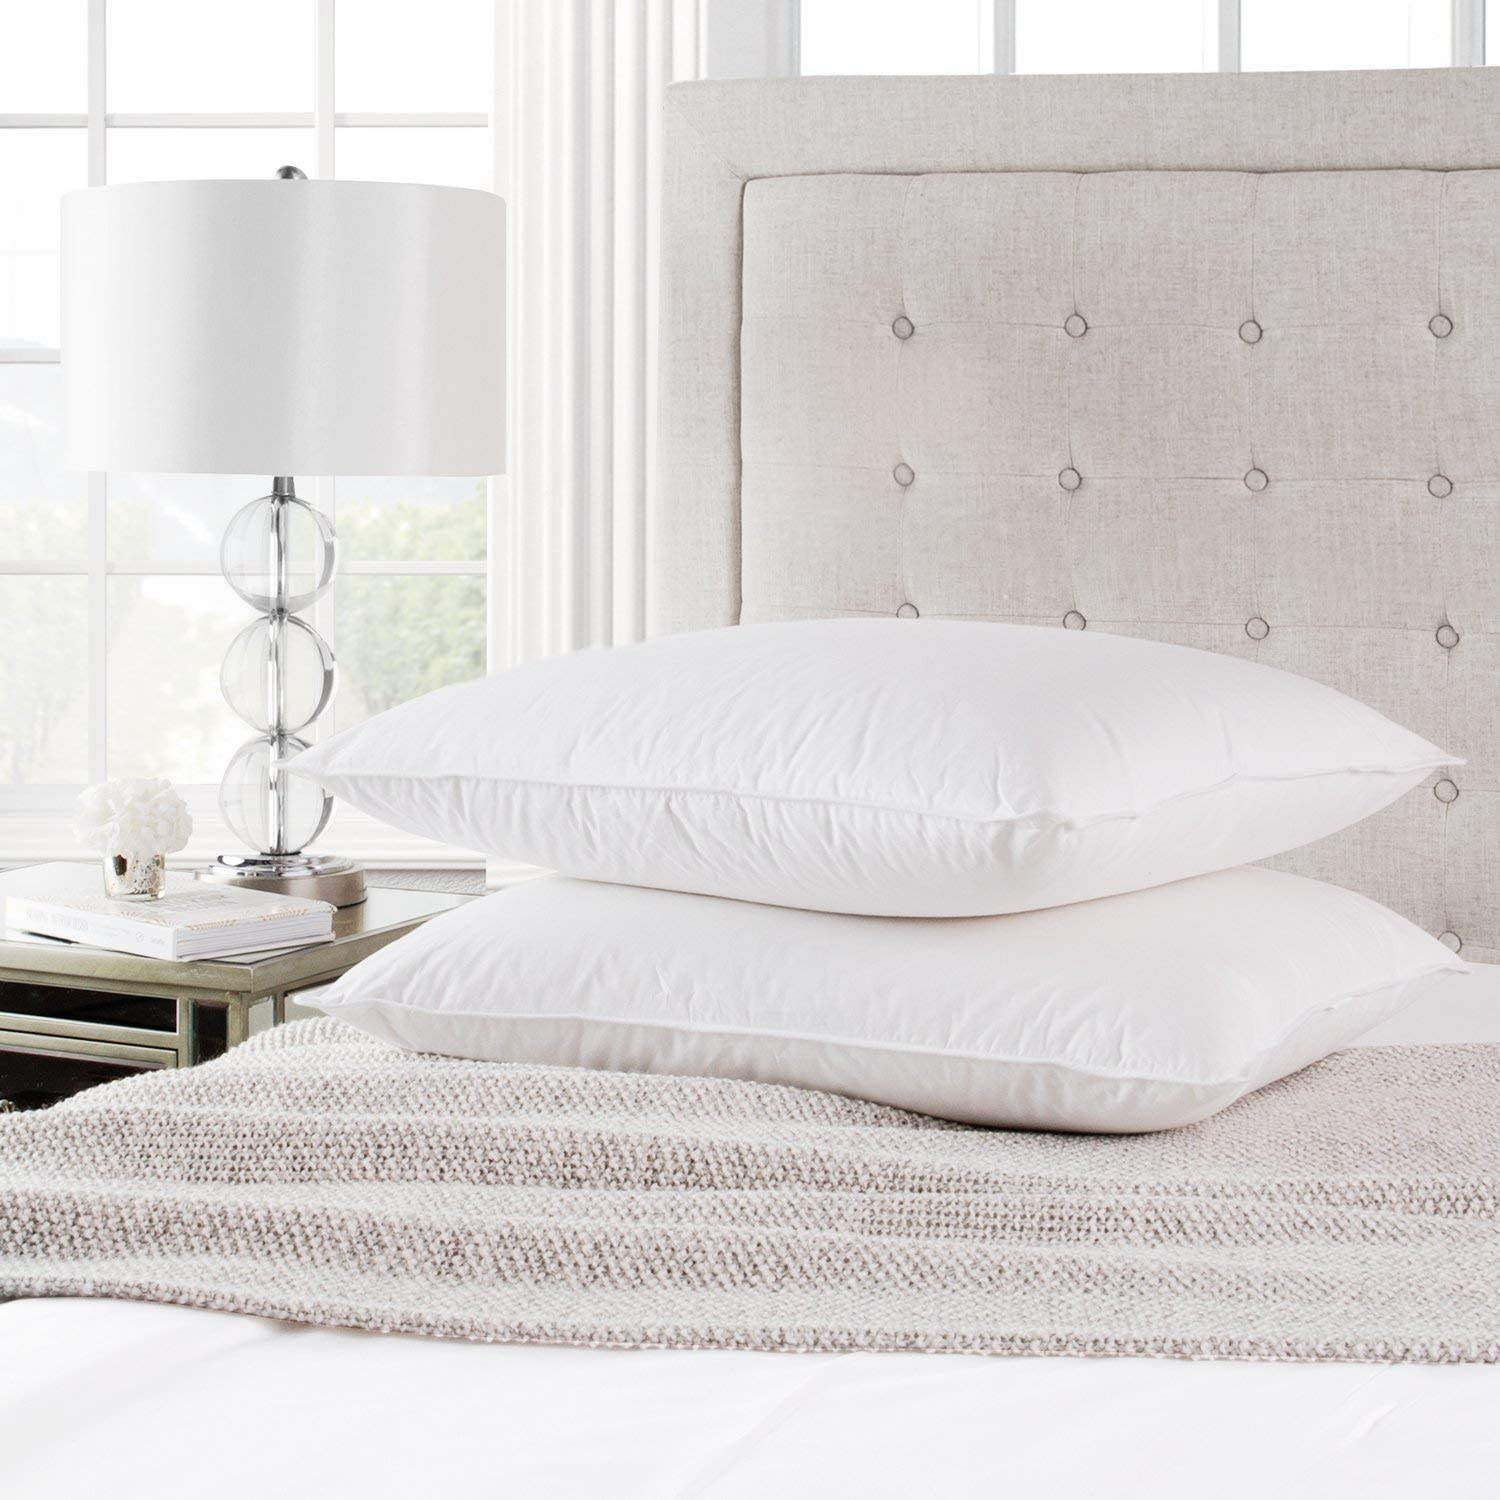 Park Hotel Collection White Down Pillow 2-Pack with Long-Staple Cotton Shell - Filled in The USA with RDS Certified, Responsibly Sourced Down - Hypoallergenic - 550 Fill Power - King